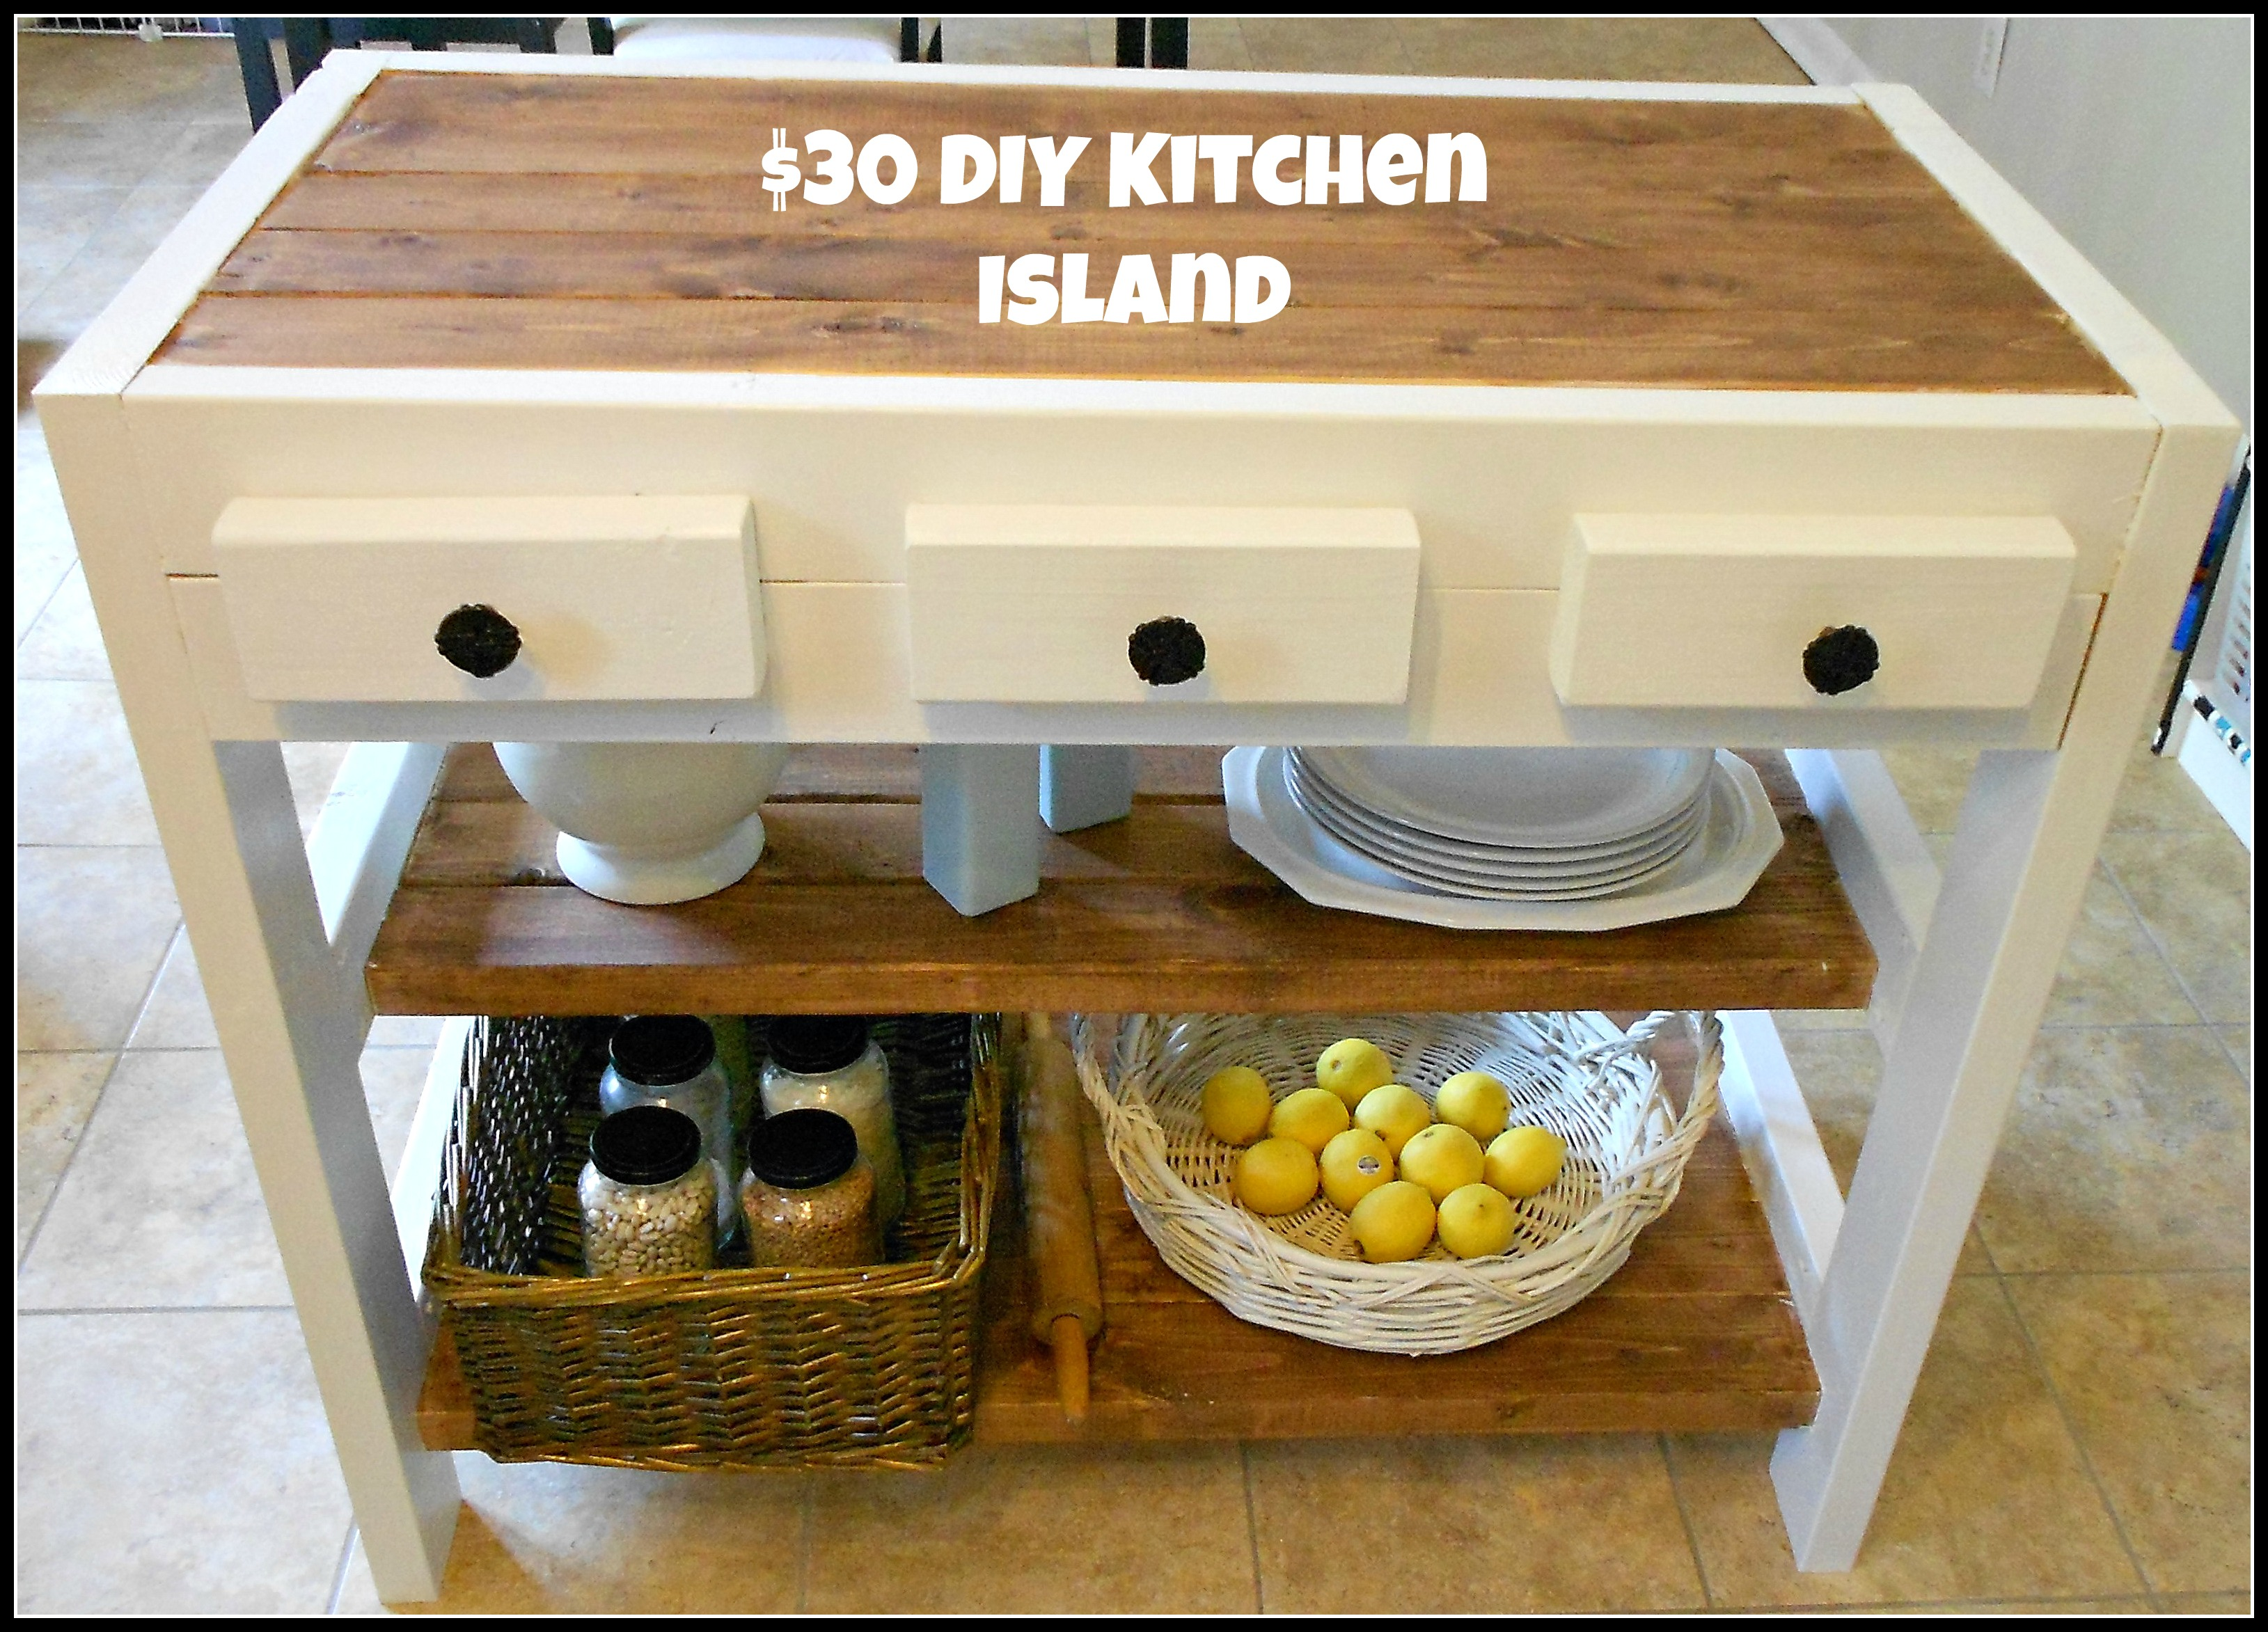 Kitchen Island Diy $30 diy kitchen island - mom in music city